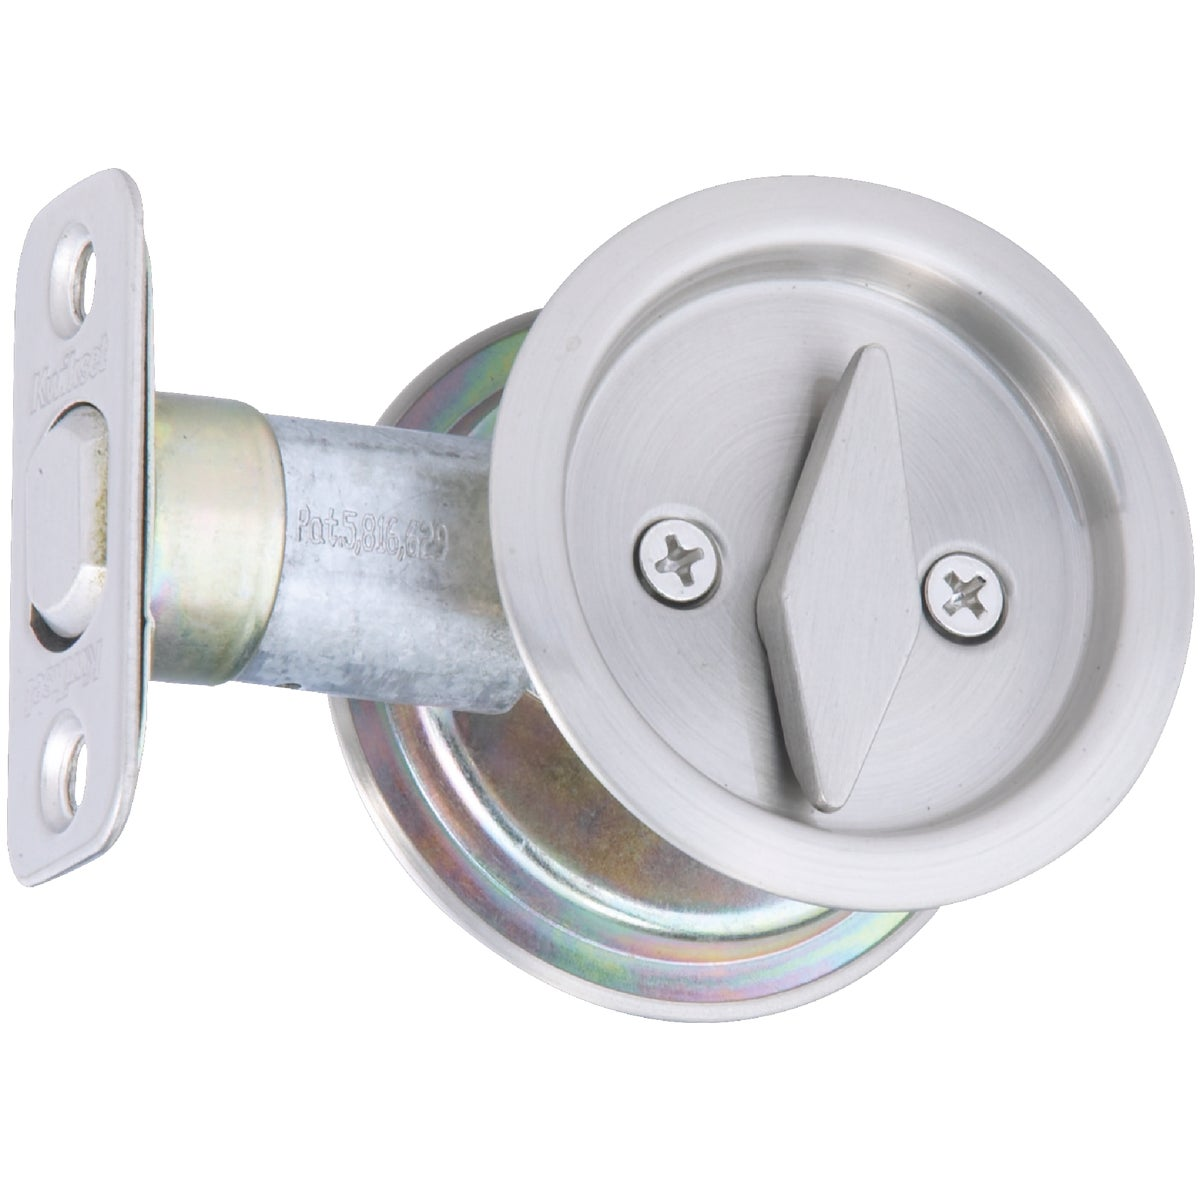 SN PRIV POCKET DOOR PULL - 335 15 by Kwikset